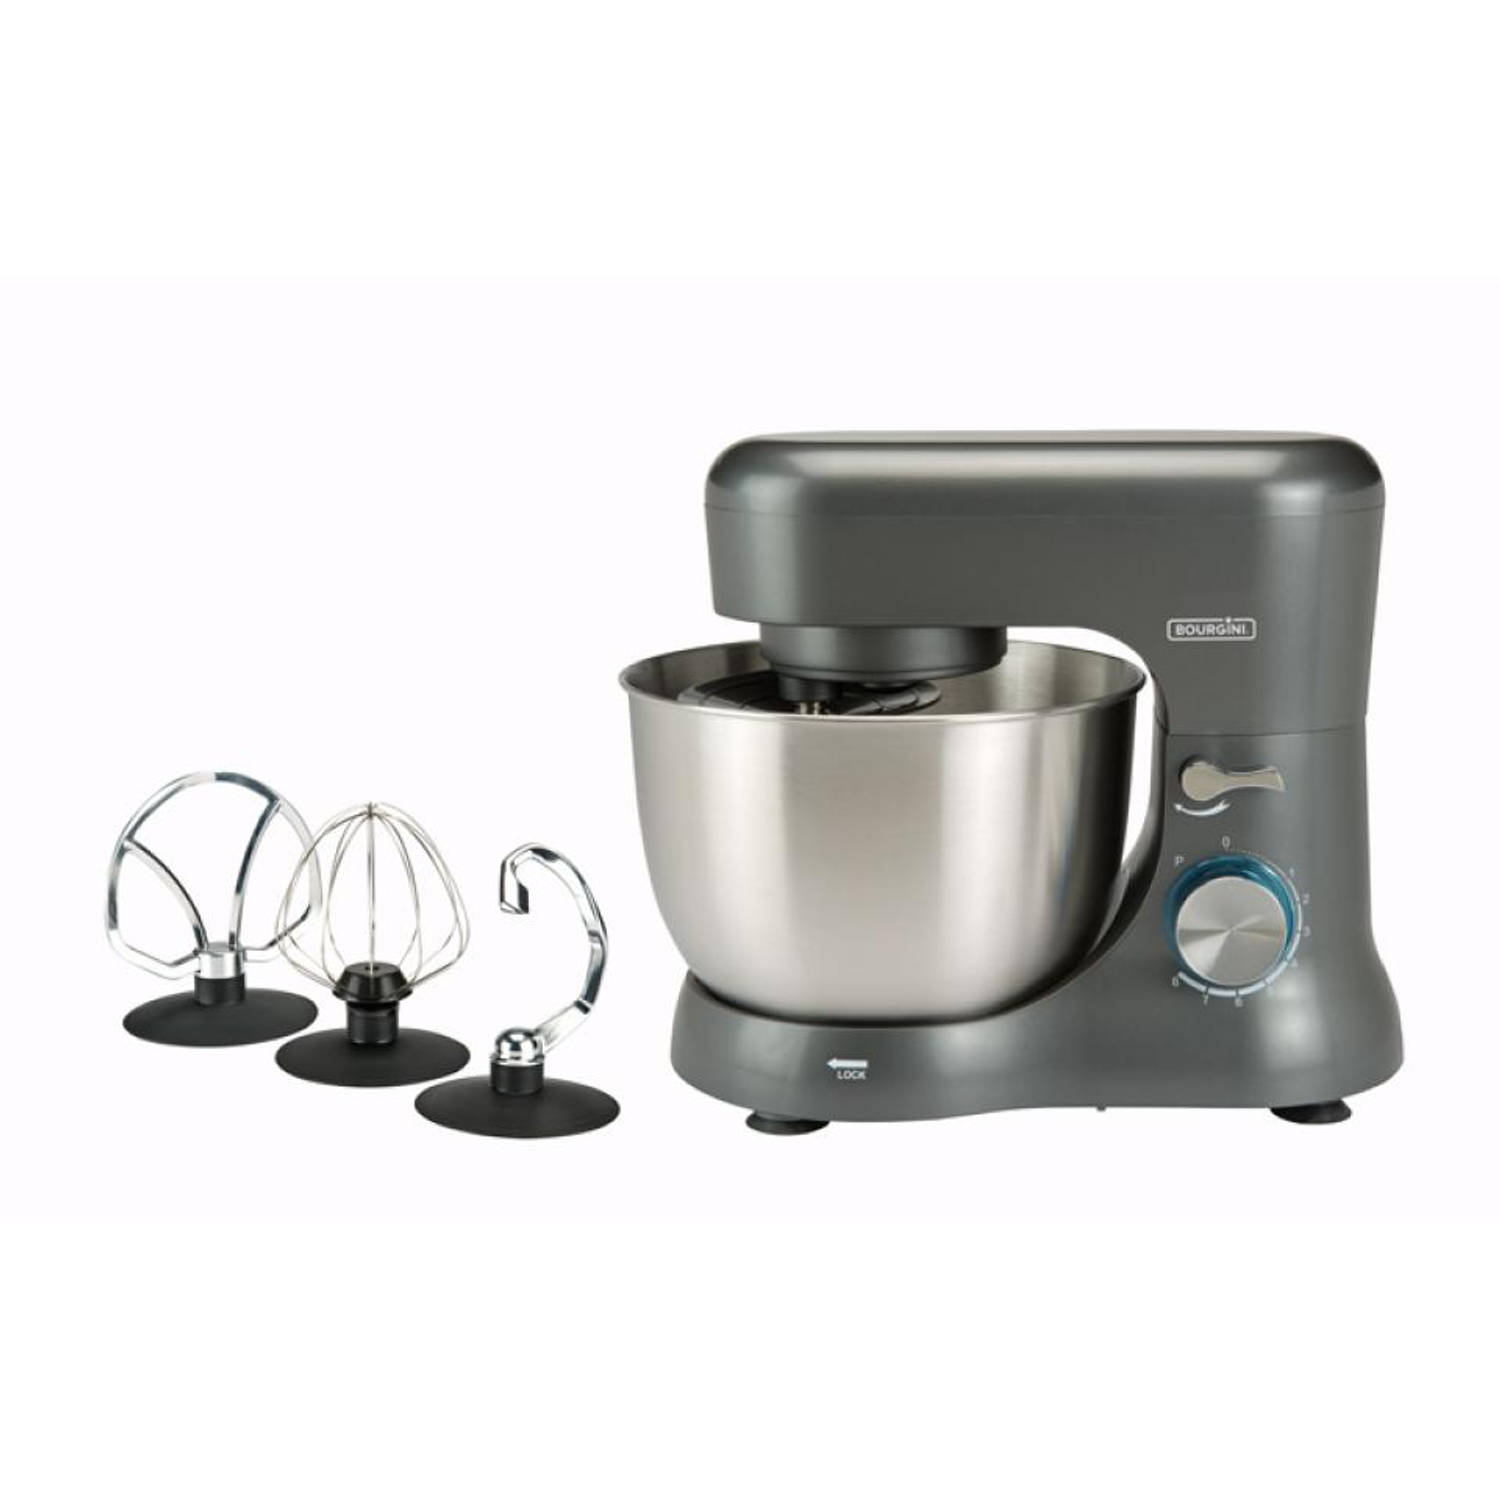 Bourgini keukenmachine Compact Kitchen Chef Grey